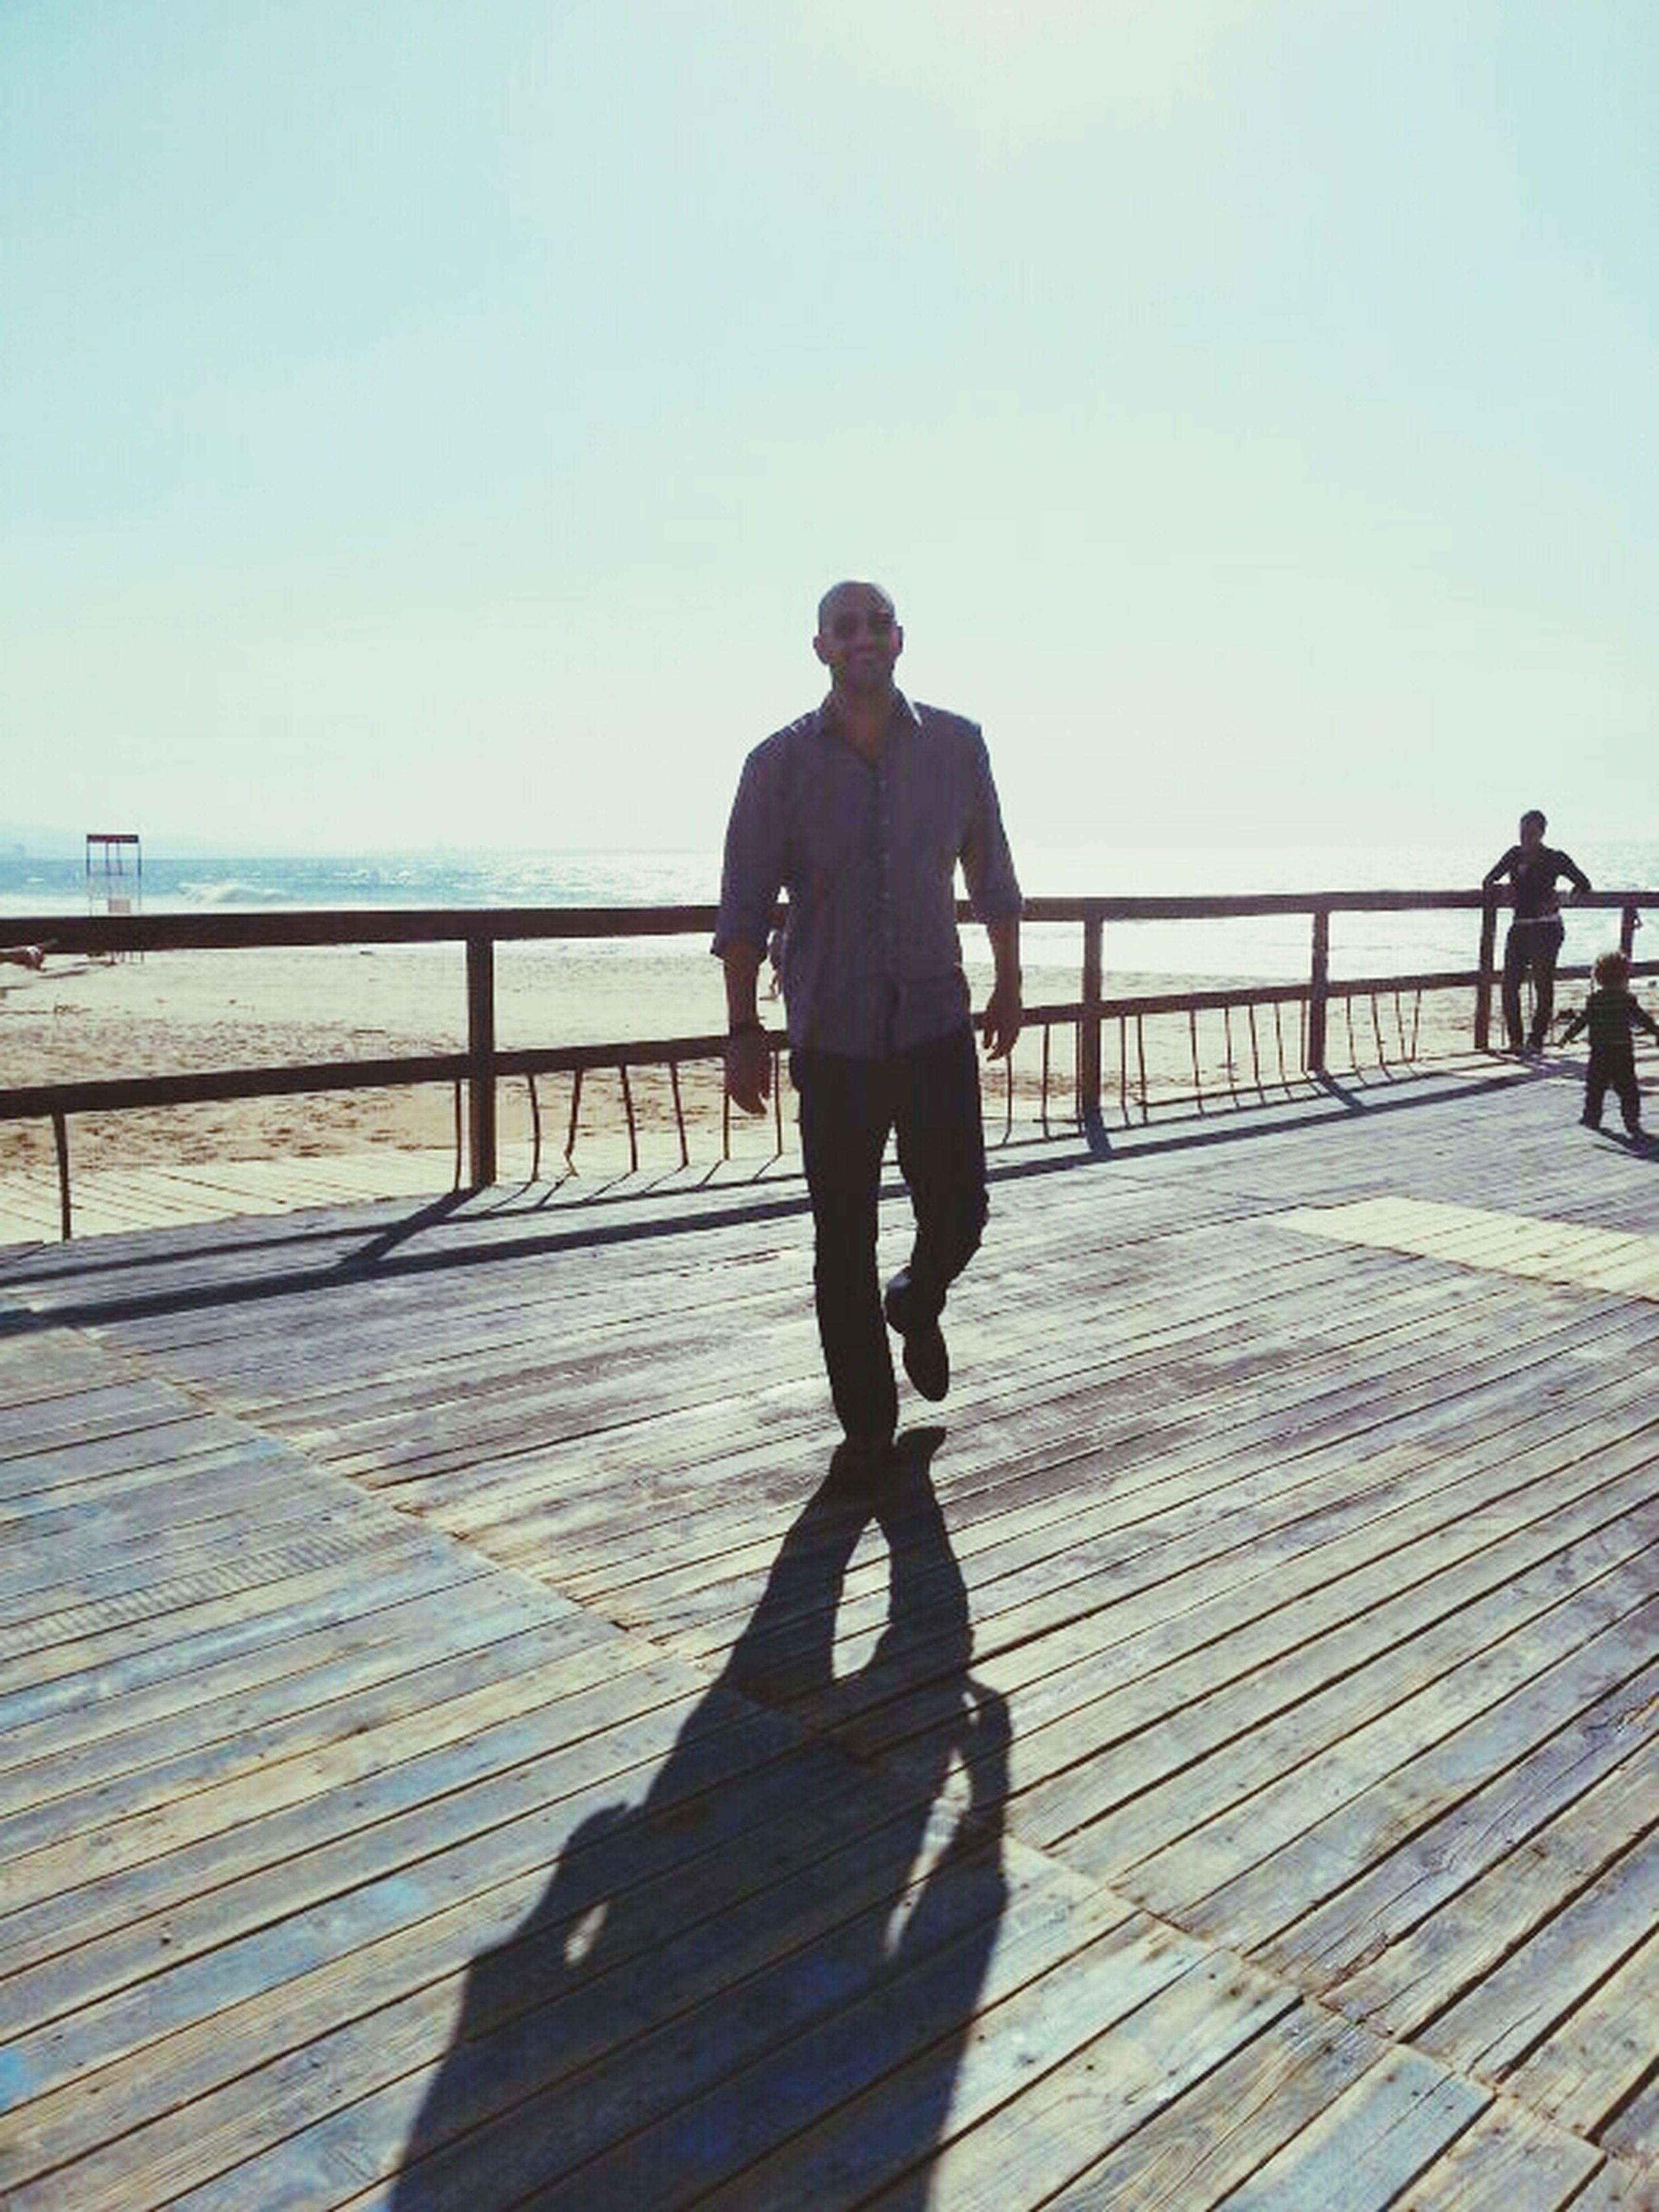 clear sky, full length, lifestyles, leisure activity, copy space, sea, railing, water, standing, rear view, pier, casual clothing, beach, walking, men, sunlight, person, outdoors